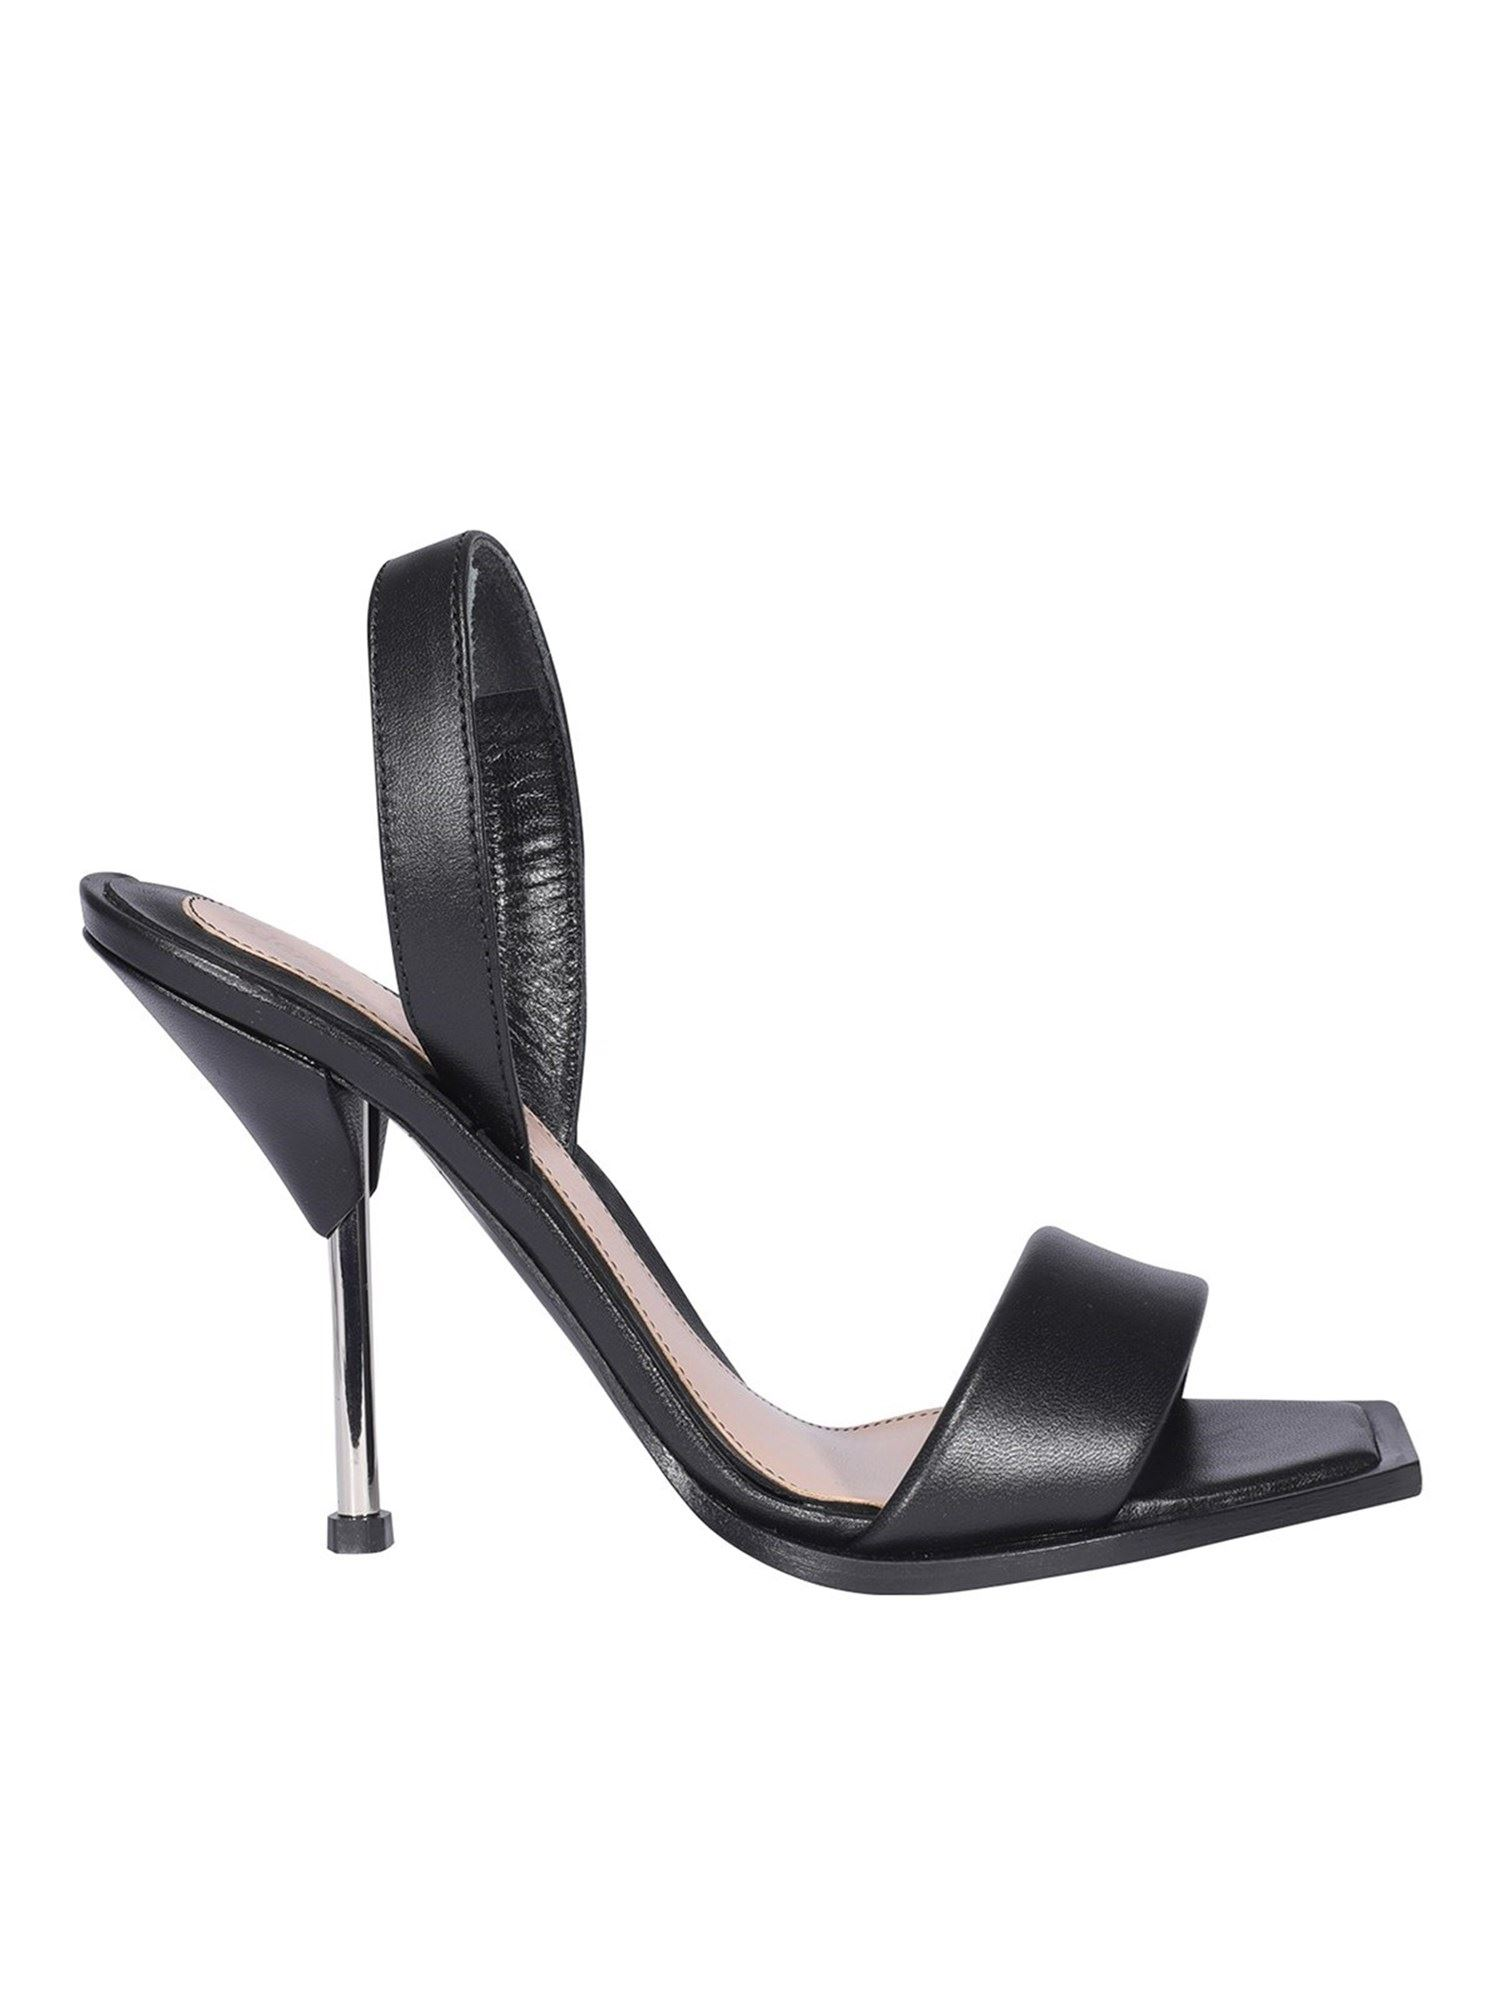 Alexander Mcqueen ALEXANDER MCQUEEN HEELED LEATHER SANDALS IN BLACK